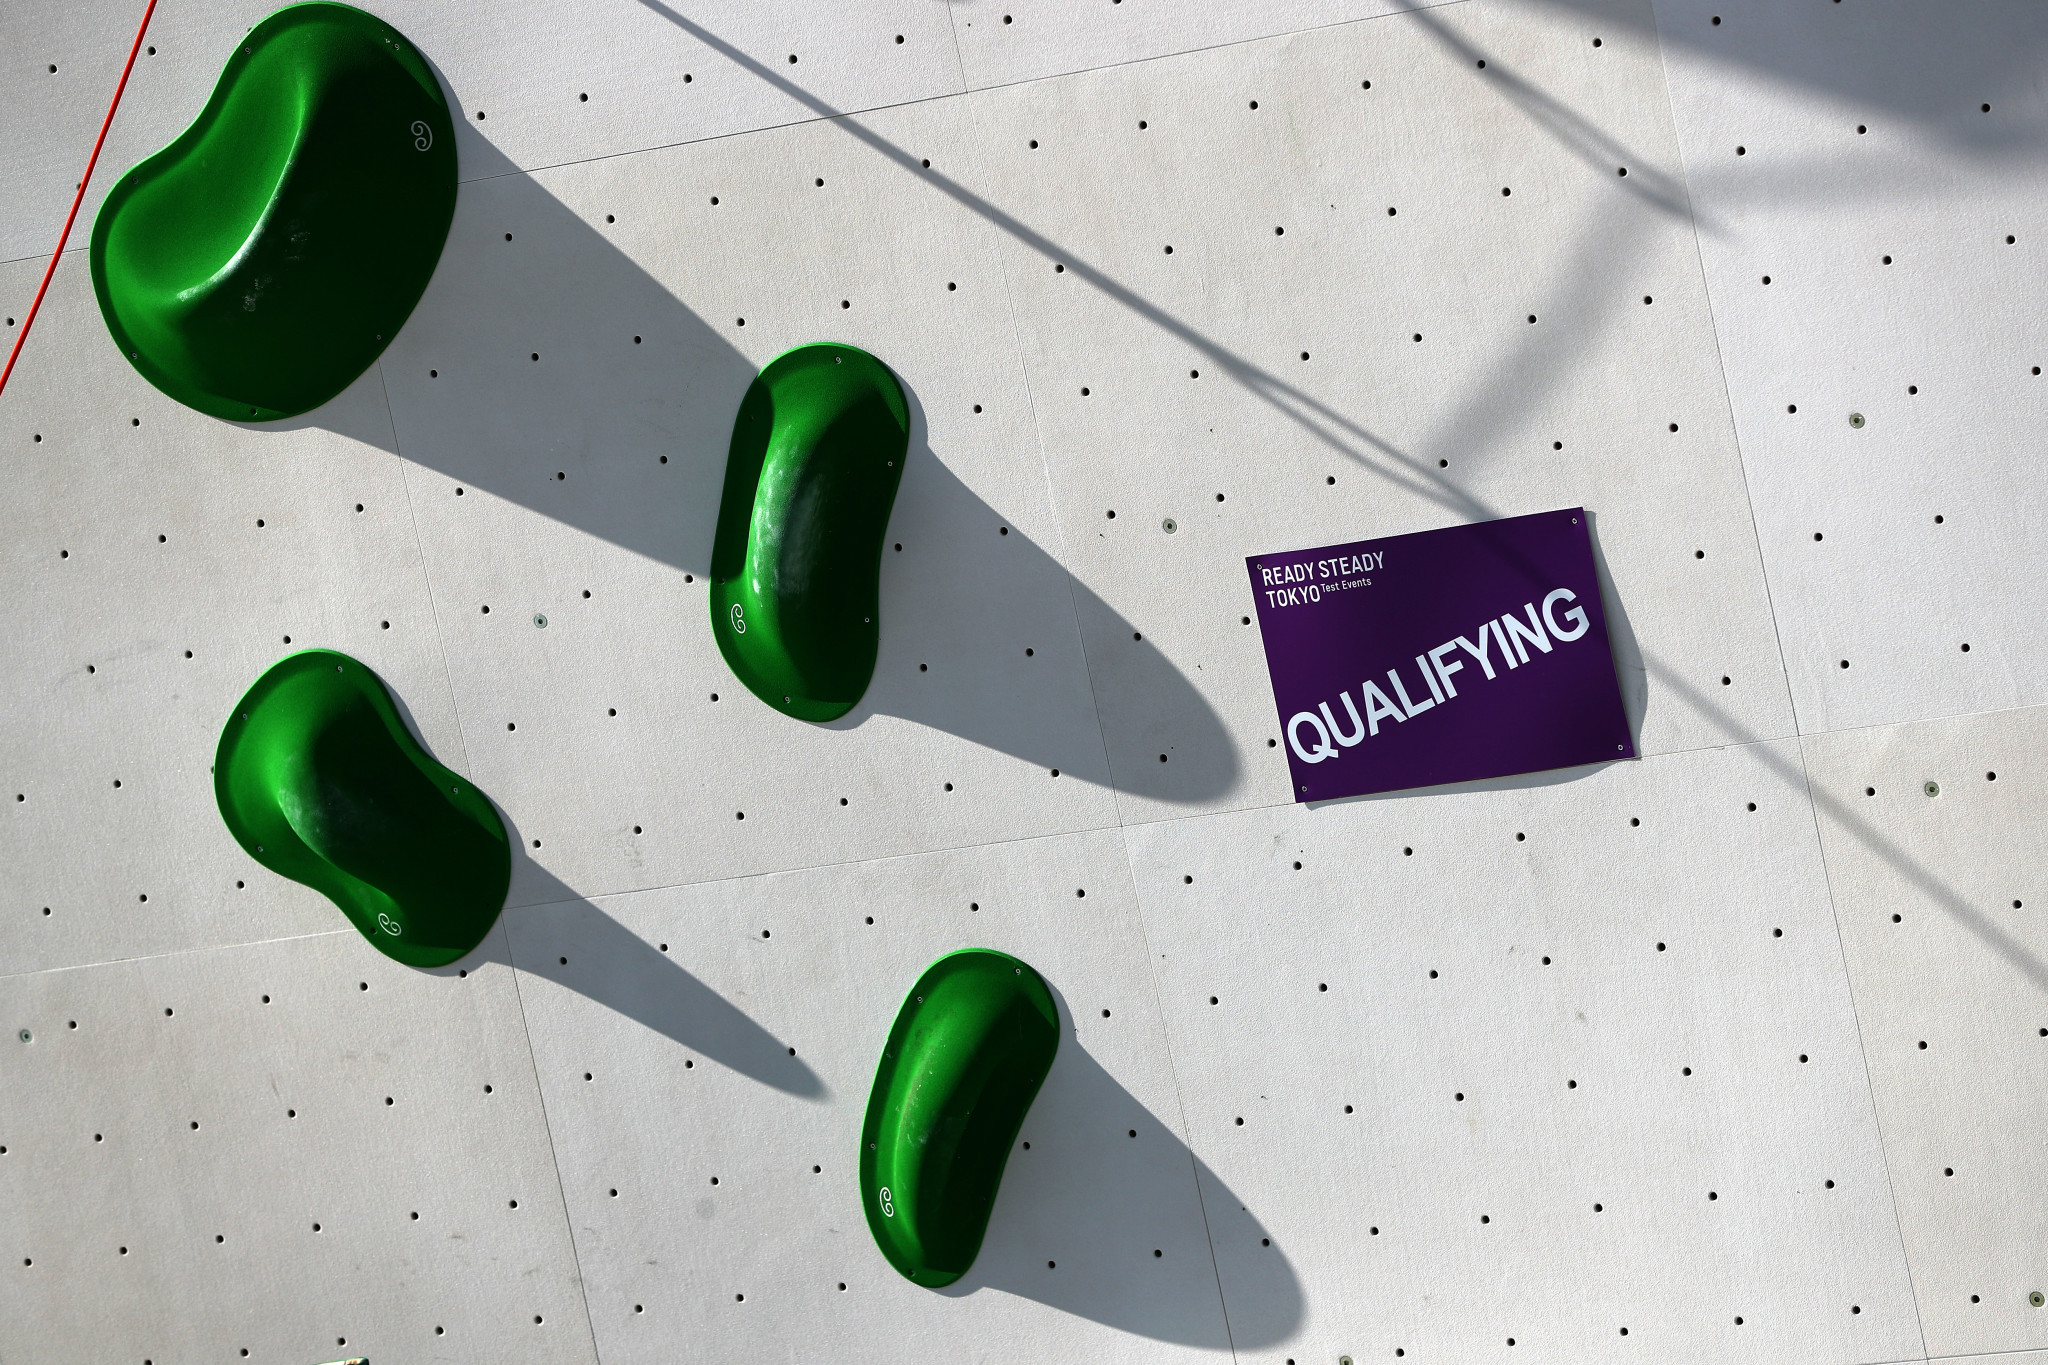 Sport climbing is due to make its Olympic debut next year ©Getty Images